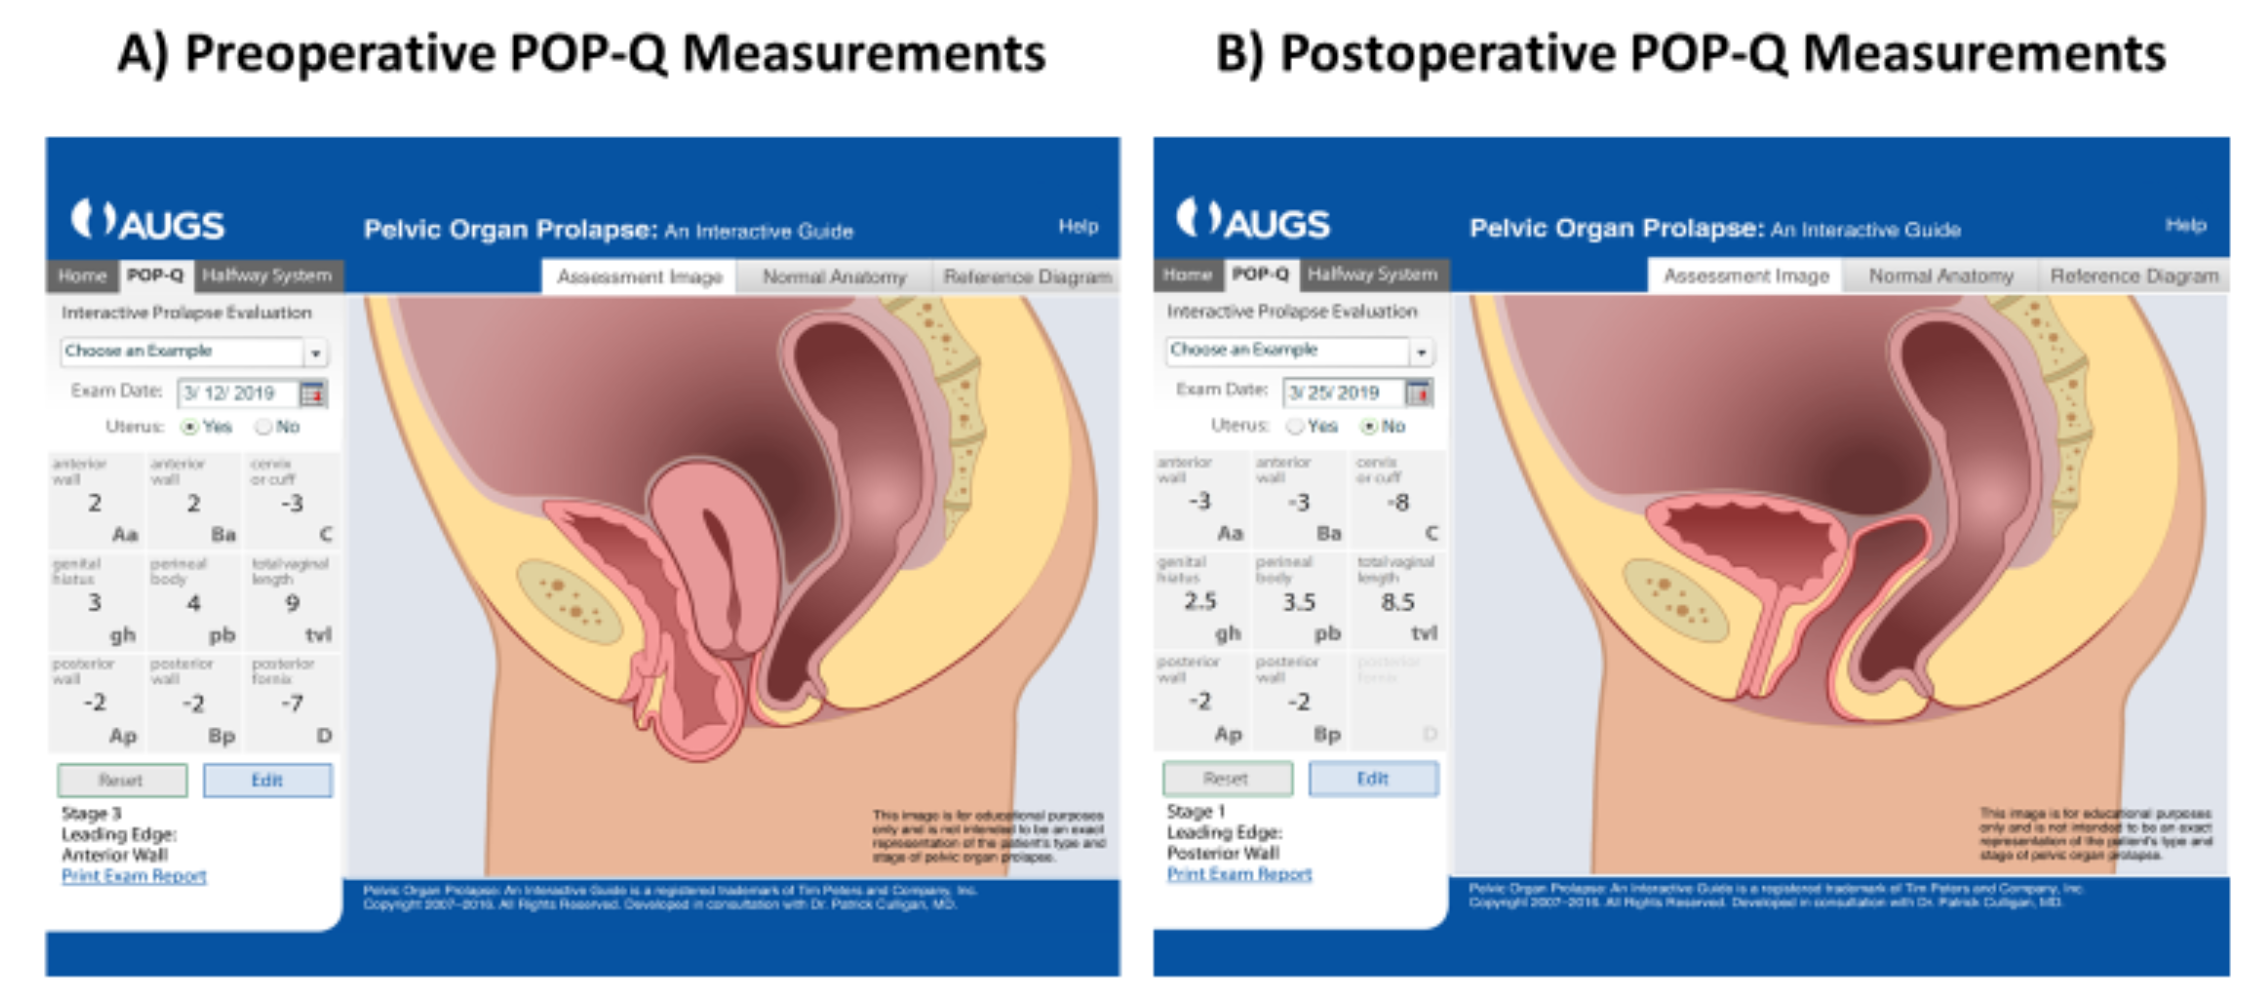 Figure 1. Graphic Demonstration of Pre- and Postoperative POP-Q Measurements